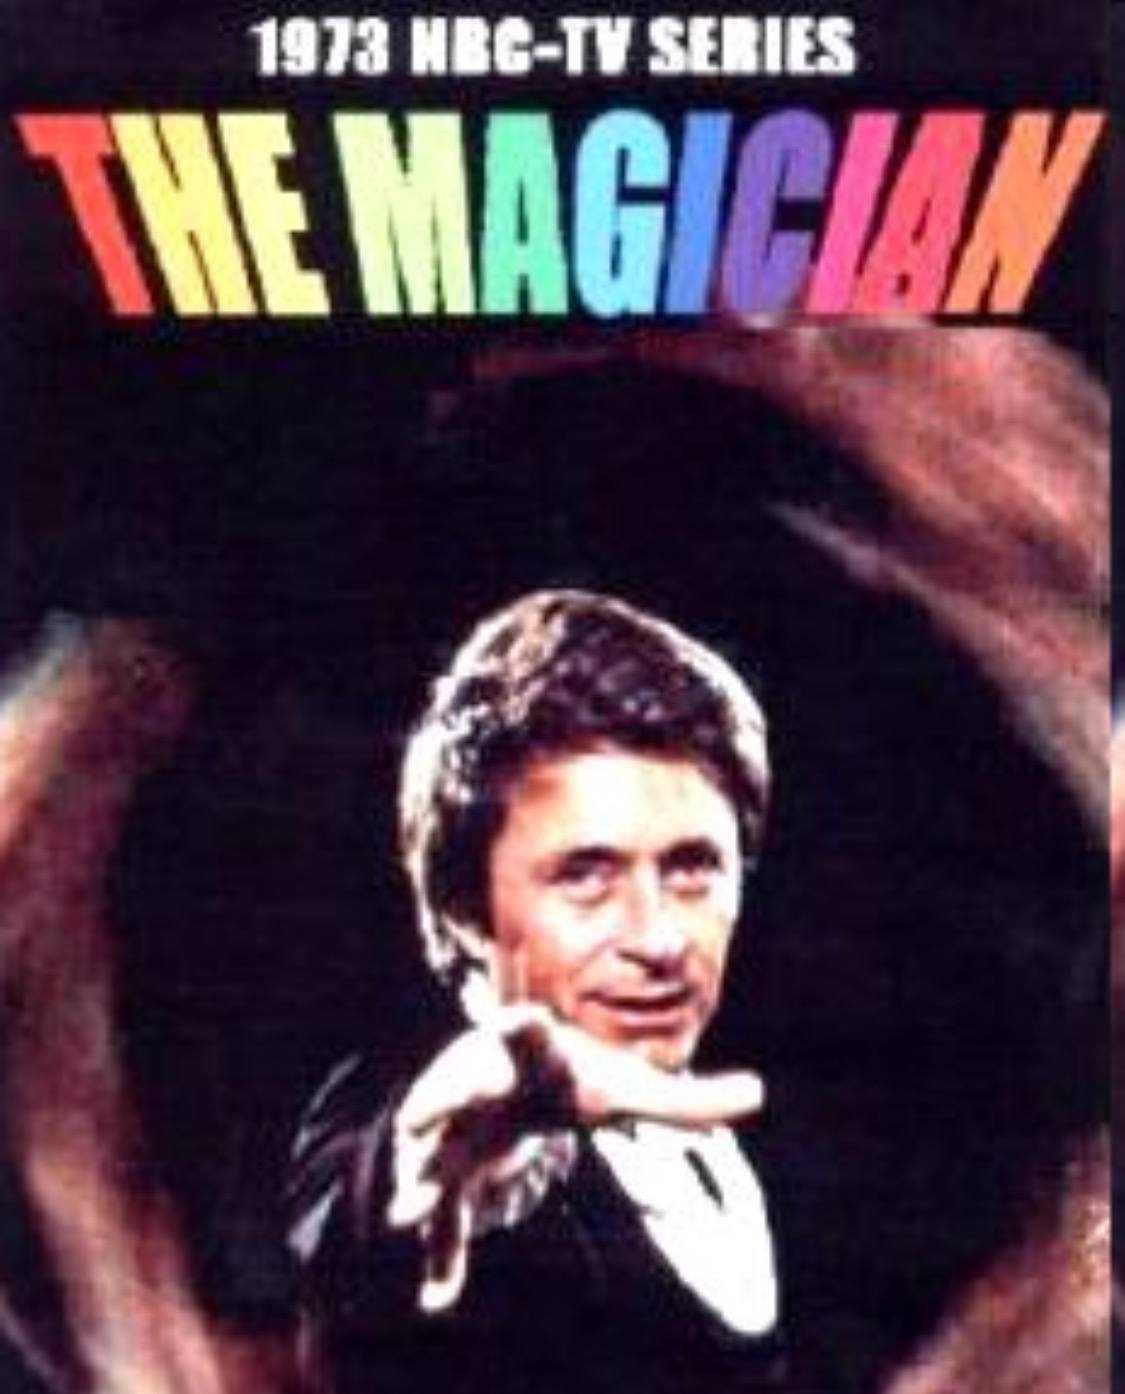 Bill Bixby in The Magician (1973)